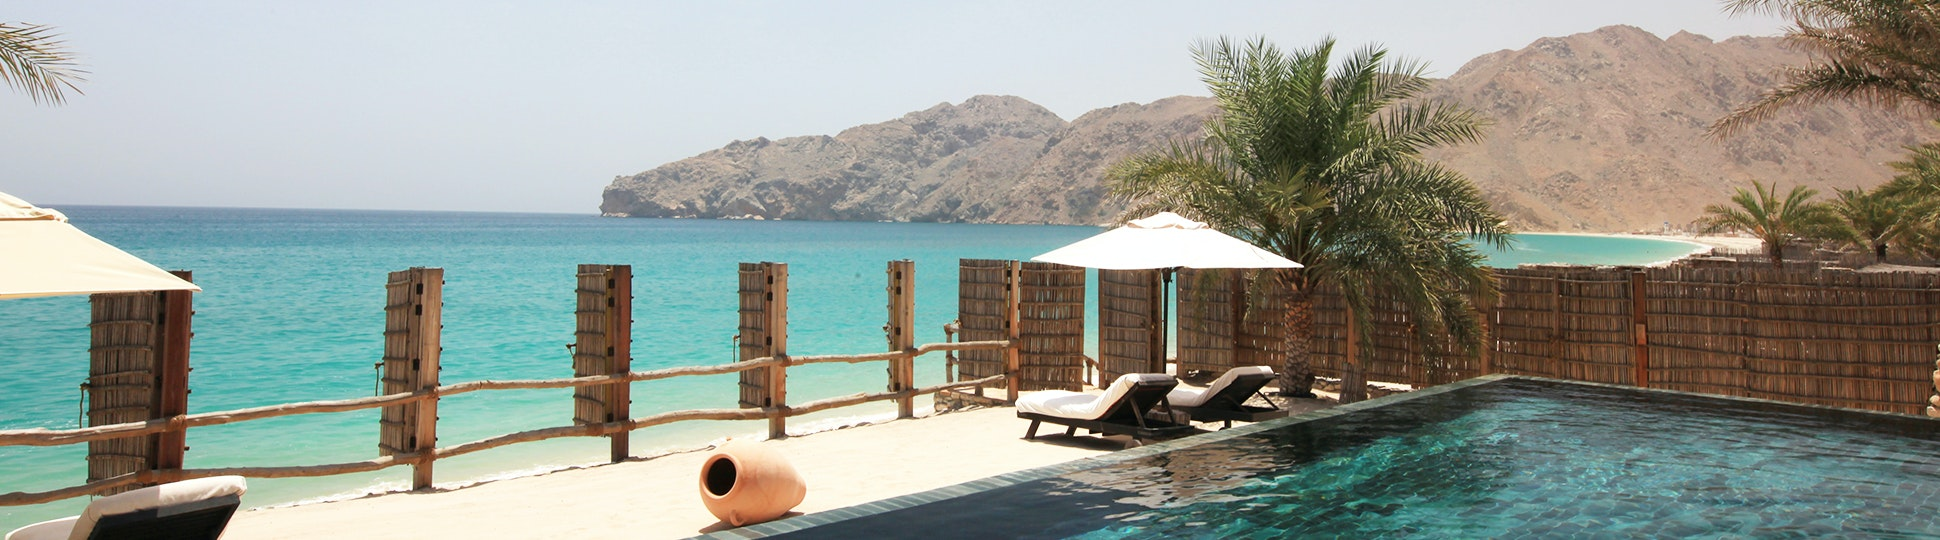 Pool area at Six Senses Zighy Bay